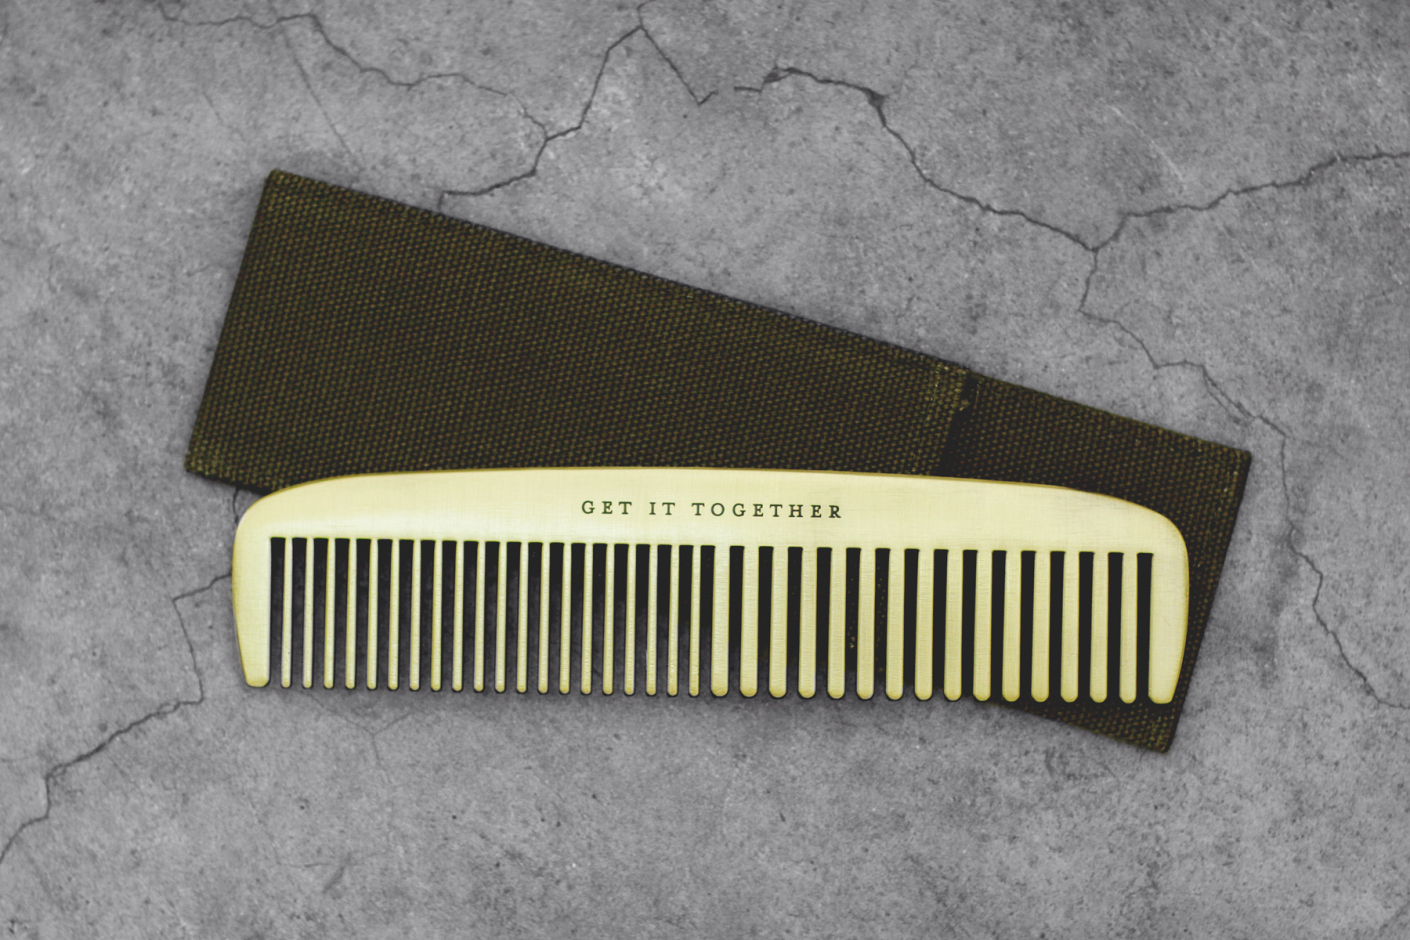 izola get it together brass comb 2 Izola Get it Together Brass Comb